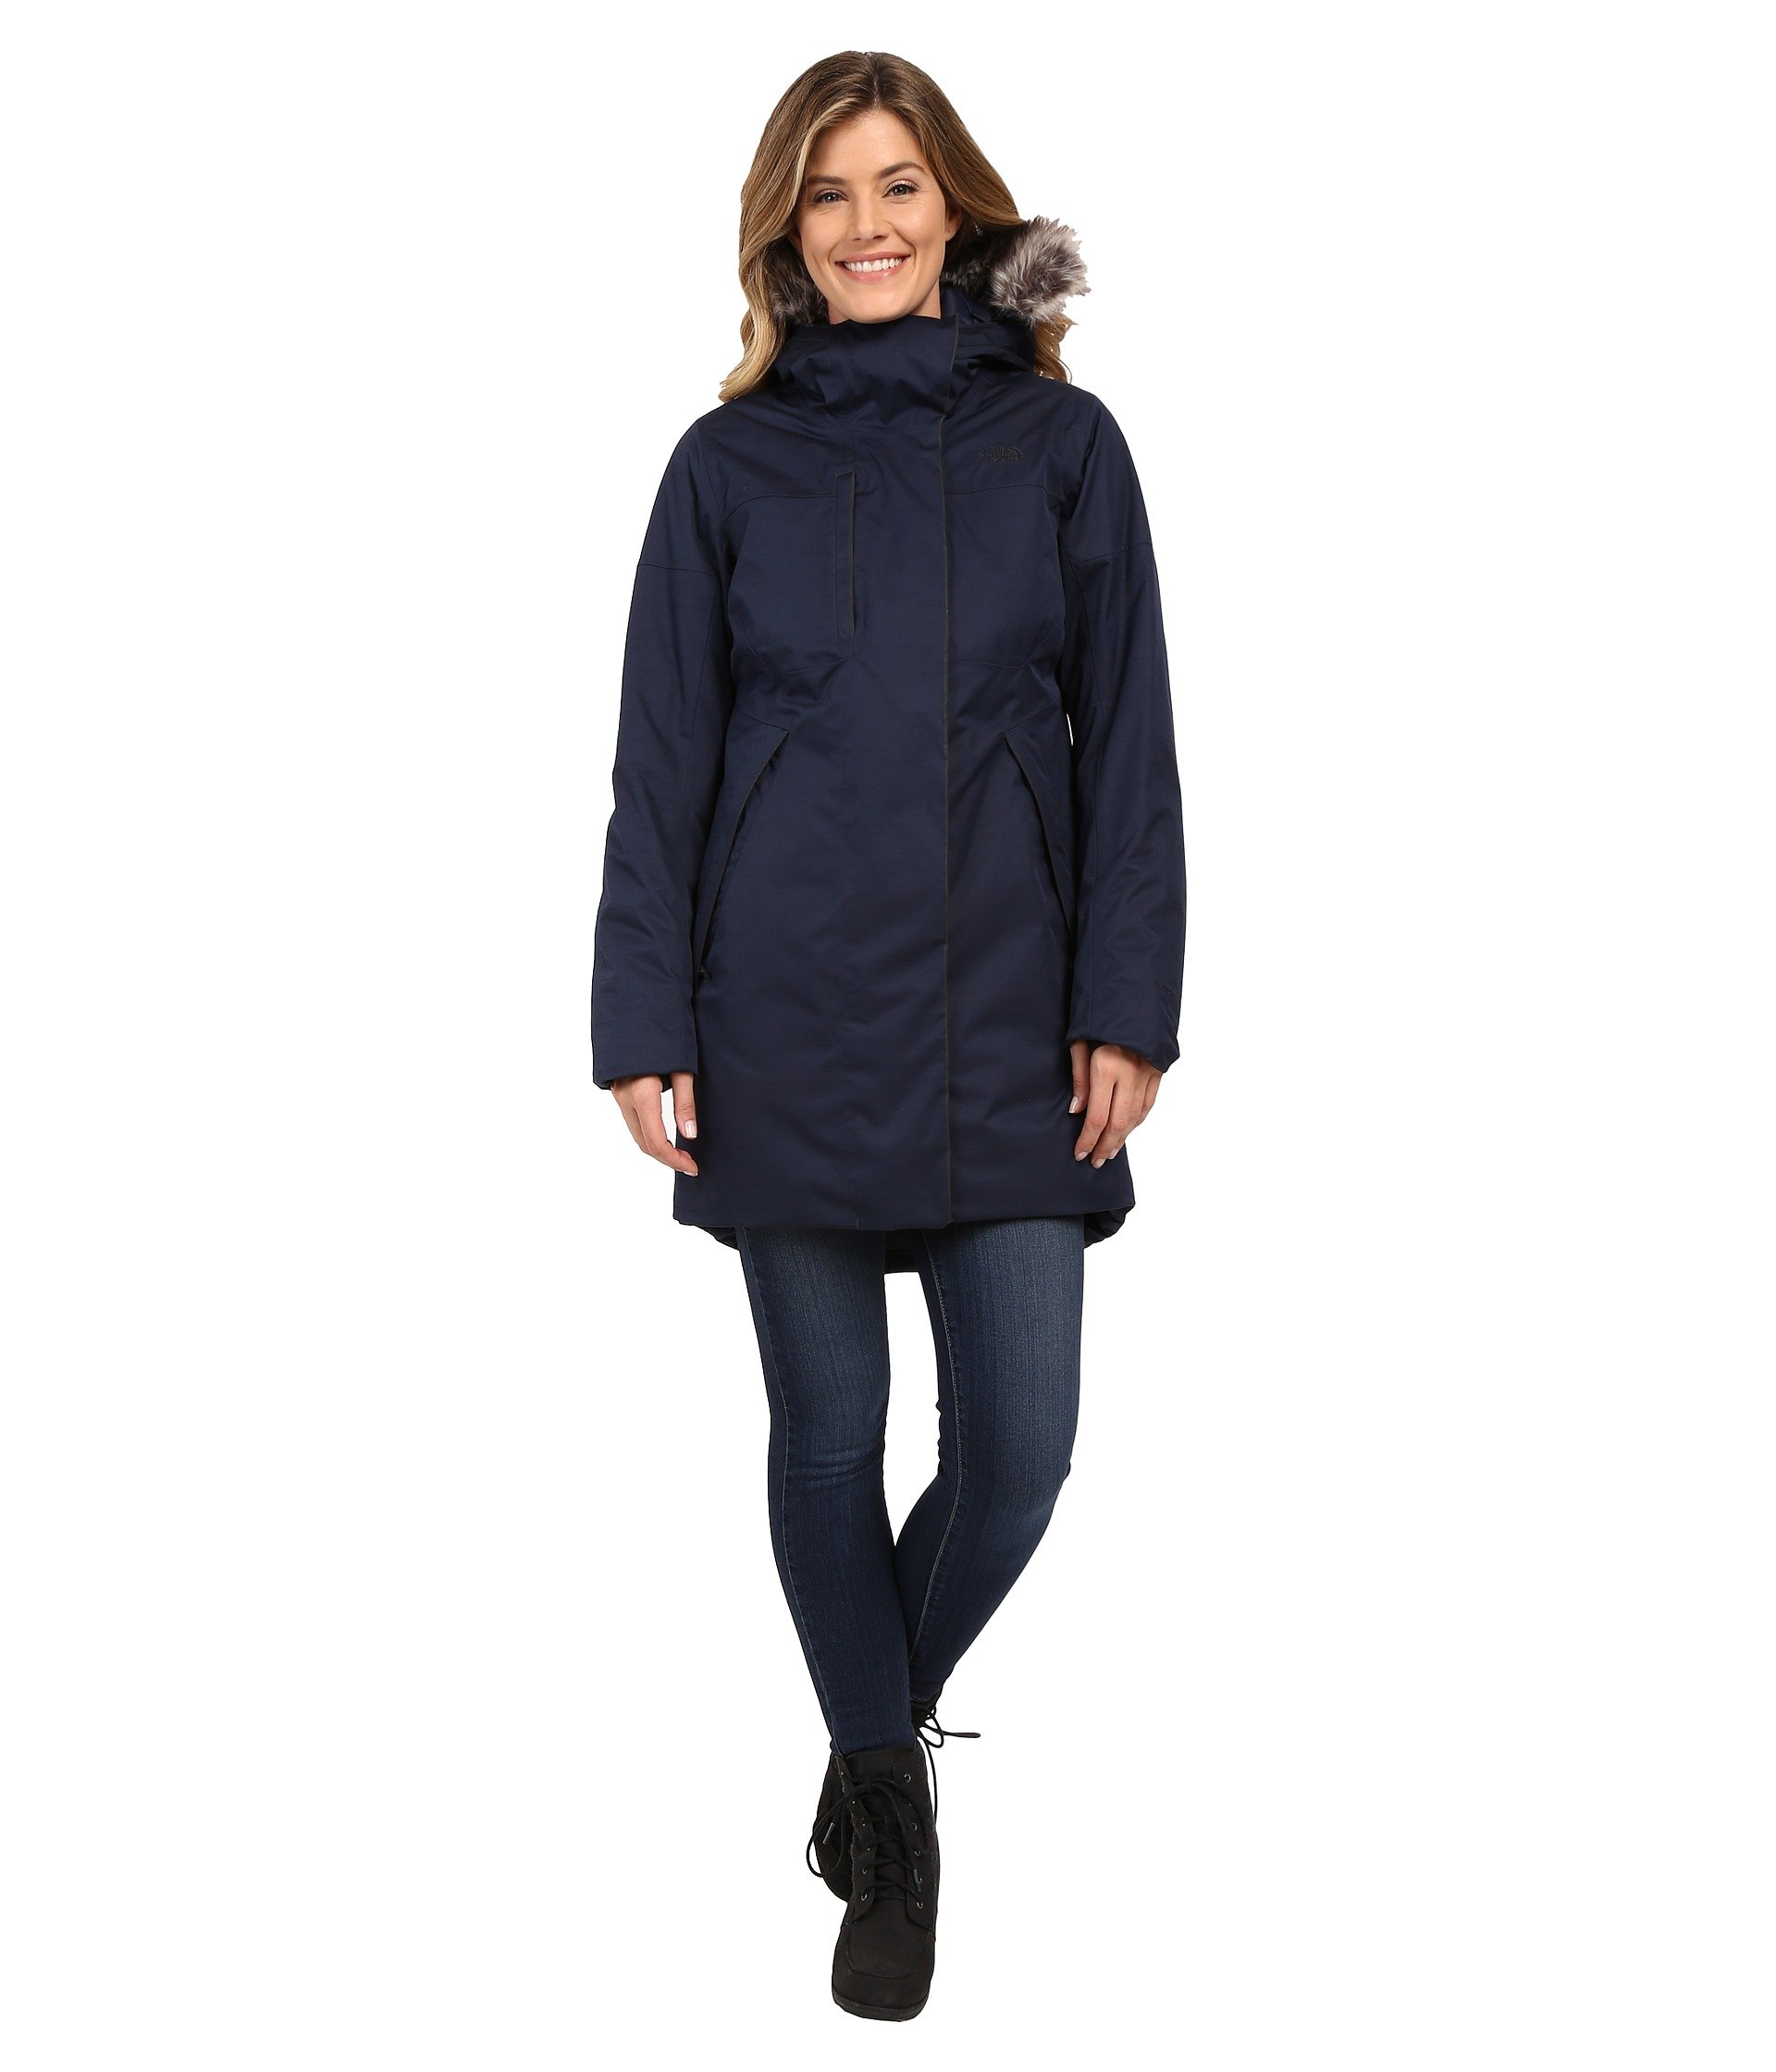 The north Face Crestmont Parka